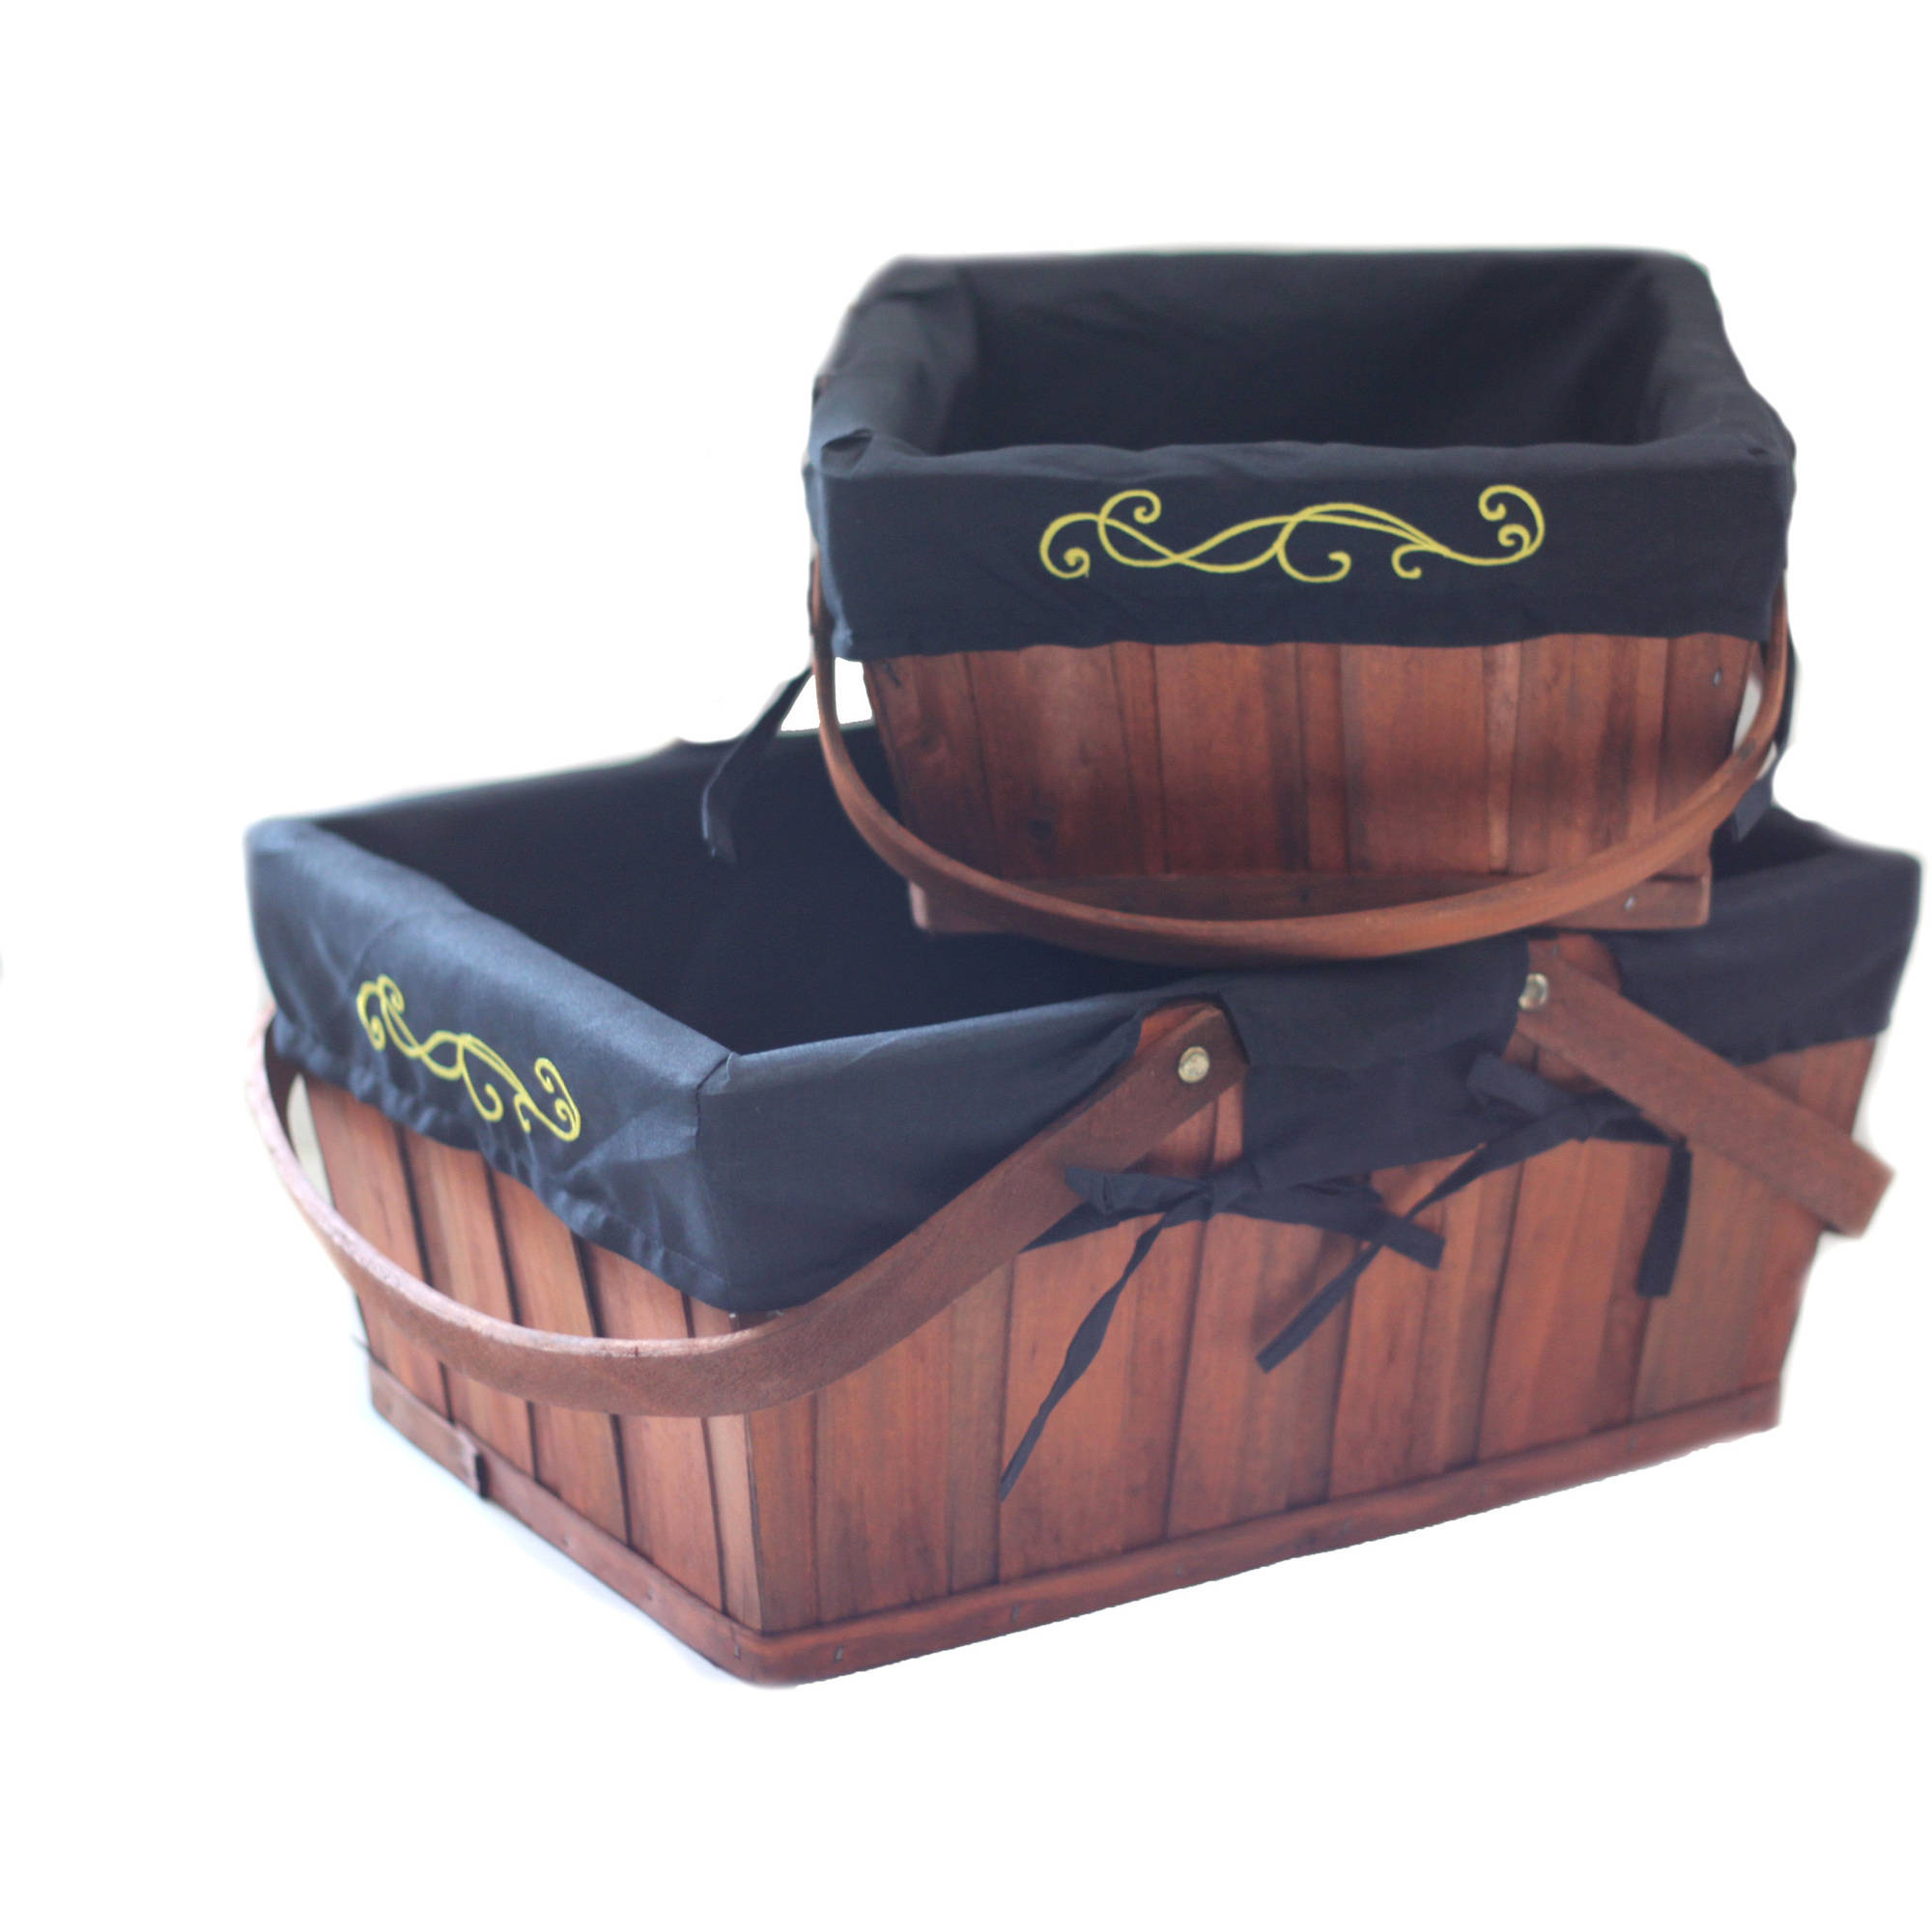 Rectangular Baskets with Handles and Embroidered Liners, Brown, Set of 2